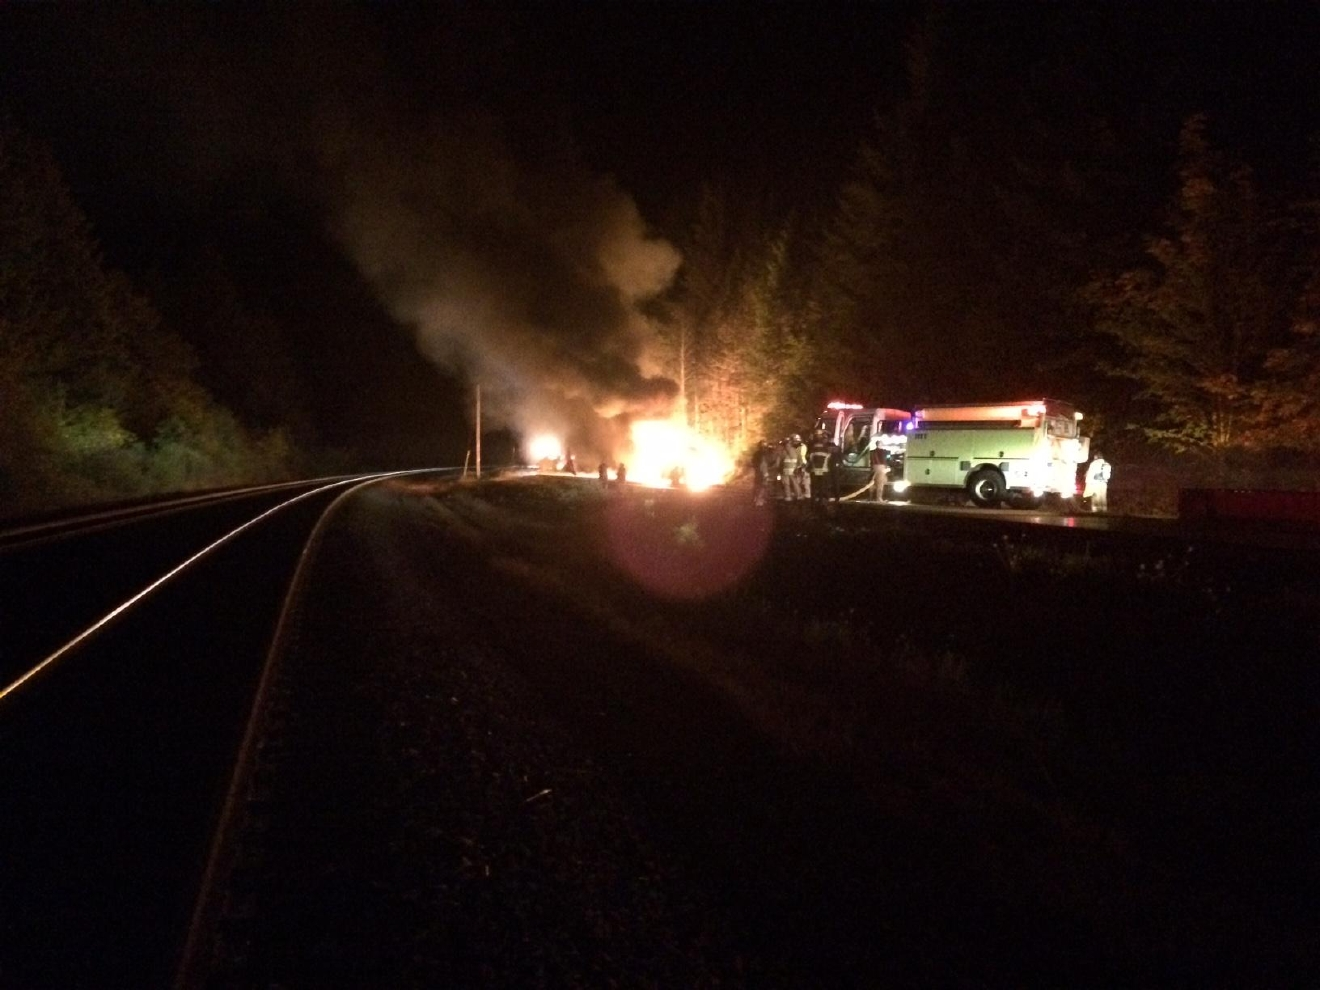 One lane of Highway 58 is open after a tanker truck crashed and exploded late Saturday night. The crash caused damage to the pavement and police are still investigating the scene. Photo courtesy ODOT